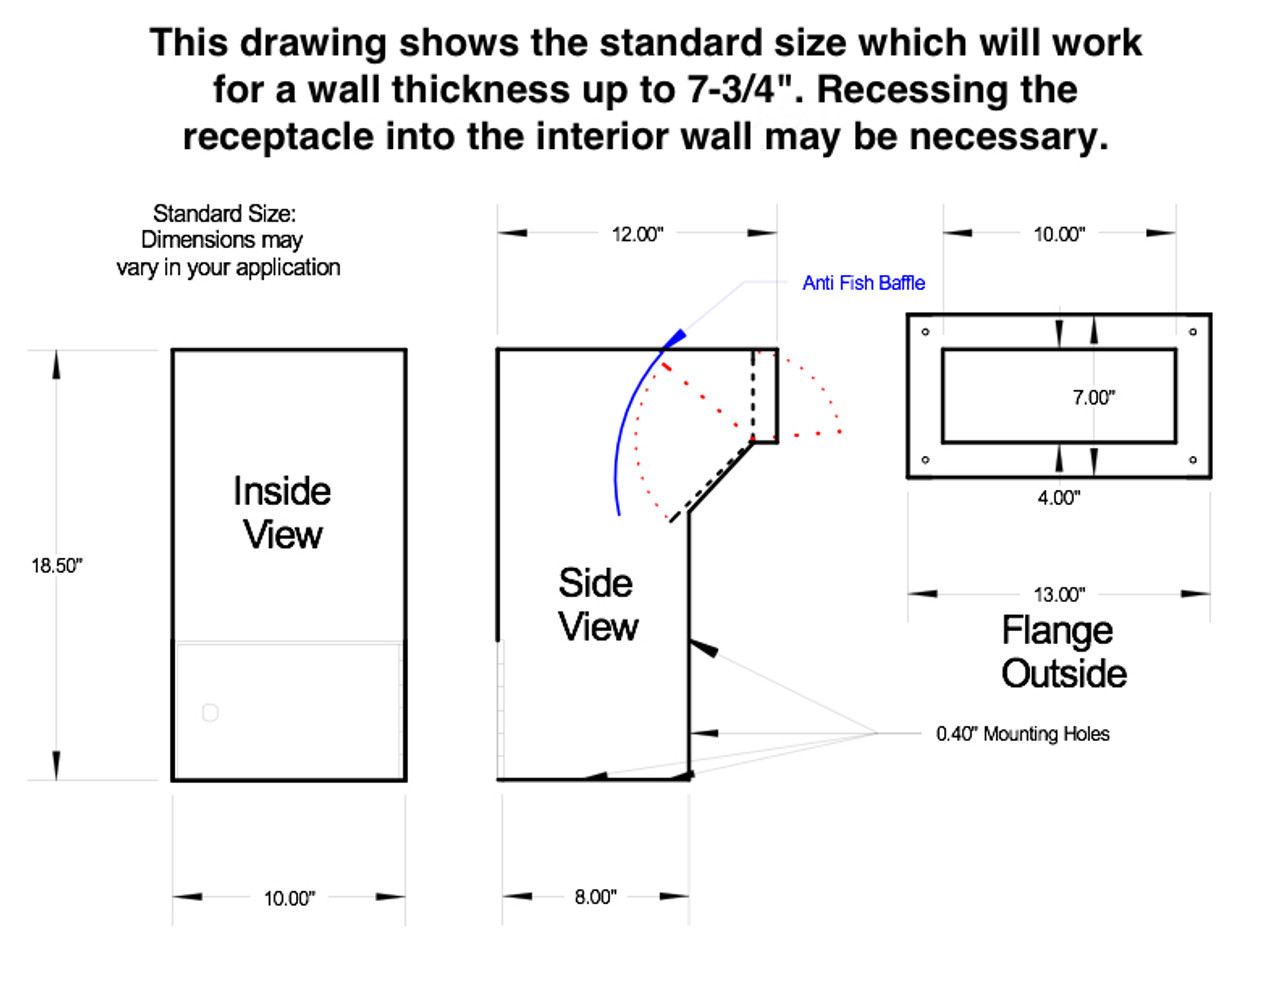 Line Drawing PVNDPRO903 for 4 to 7 inch walls